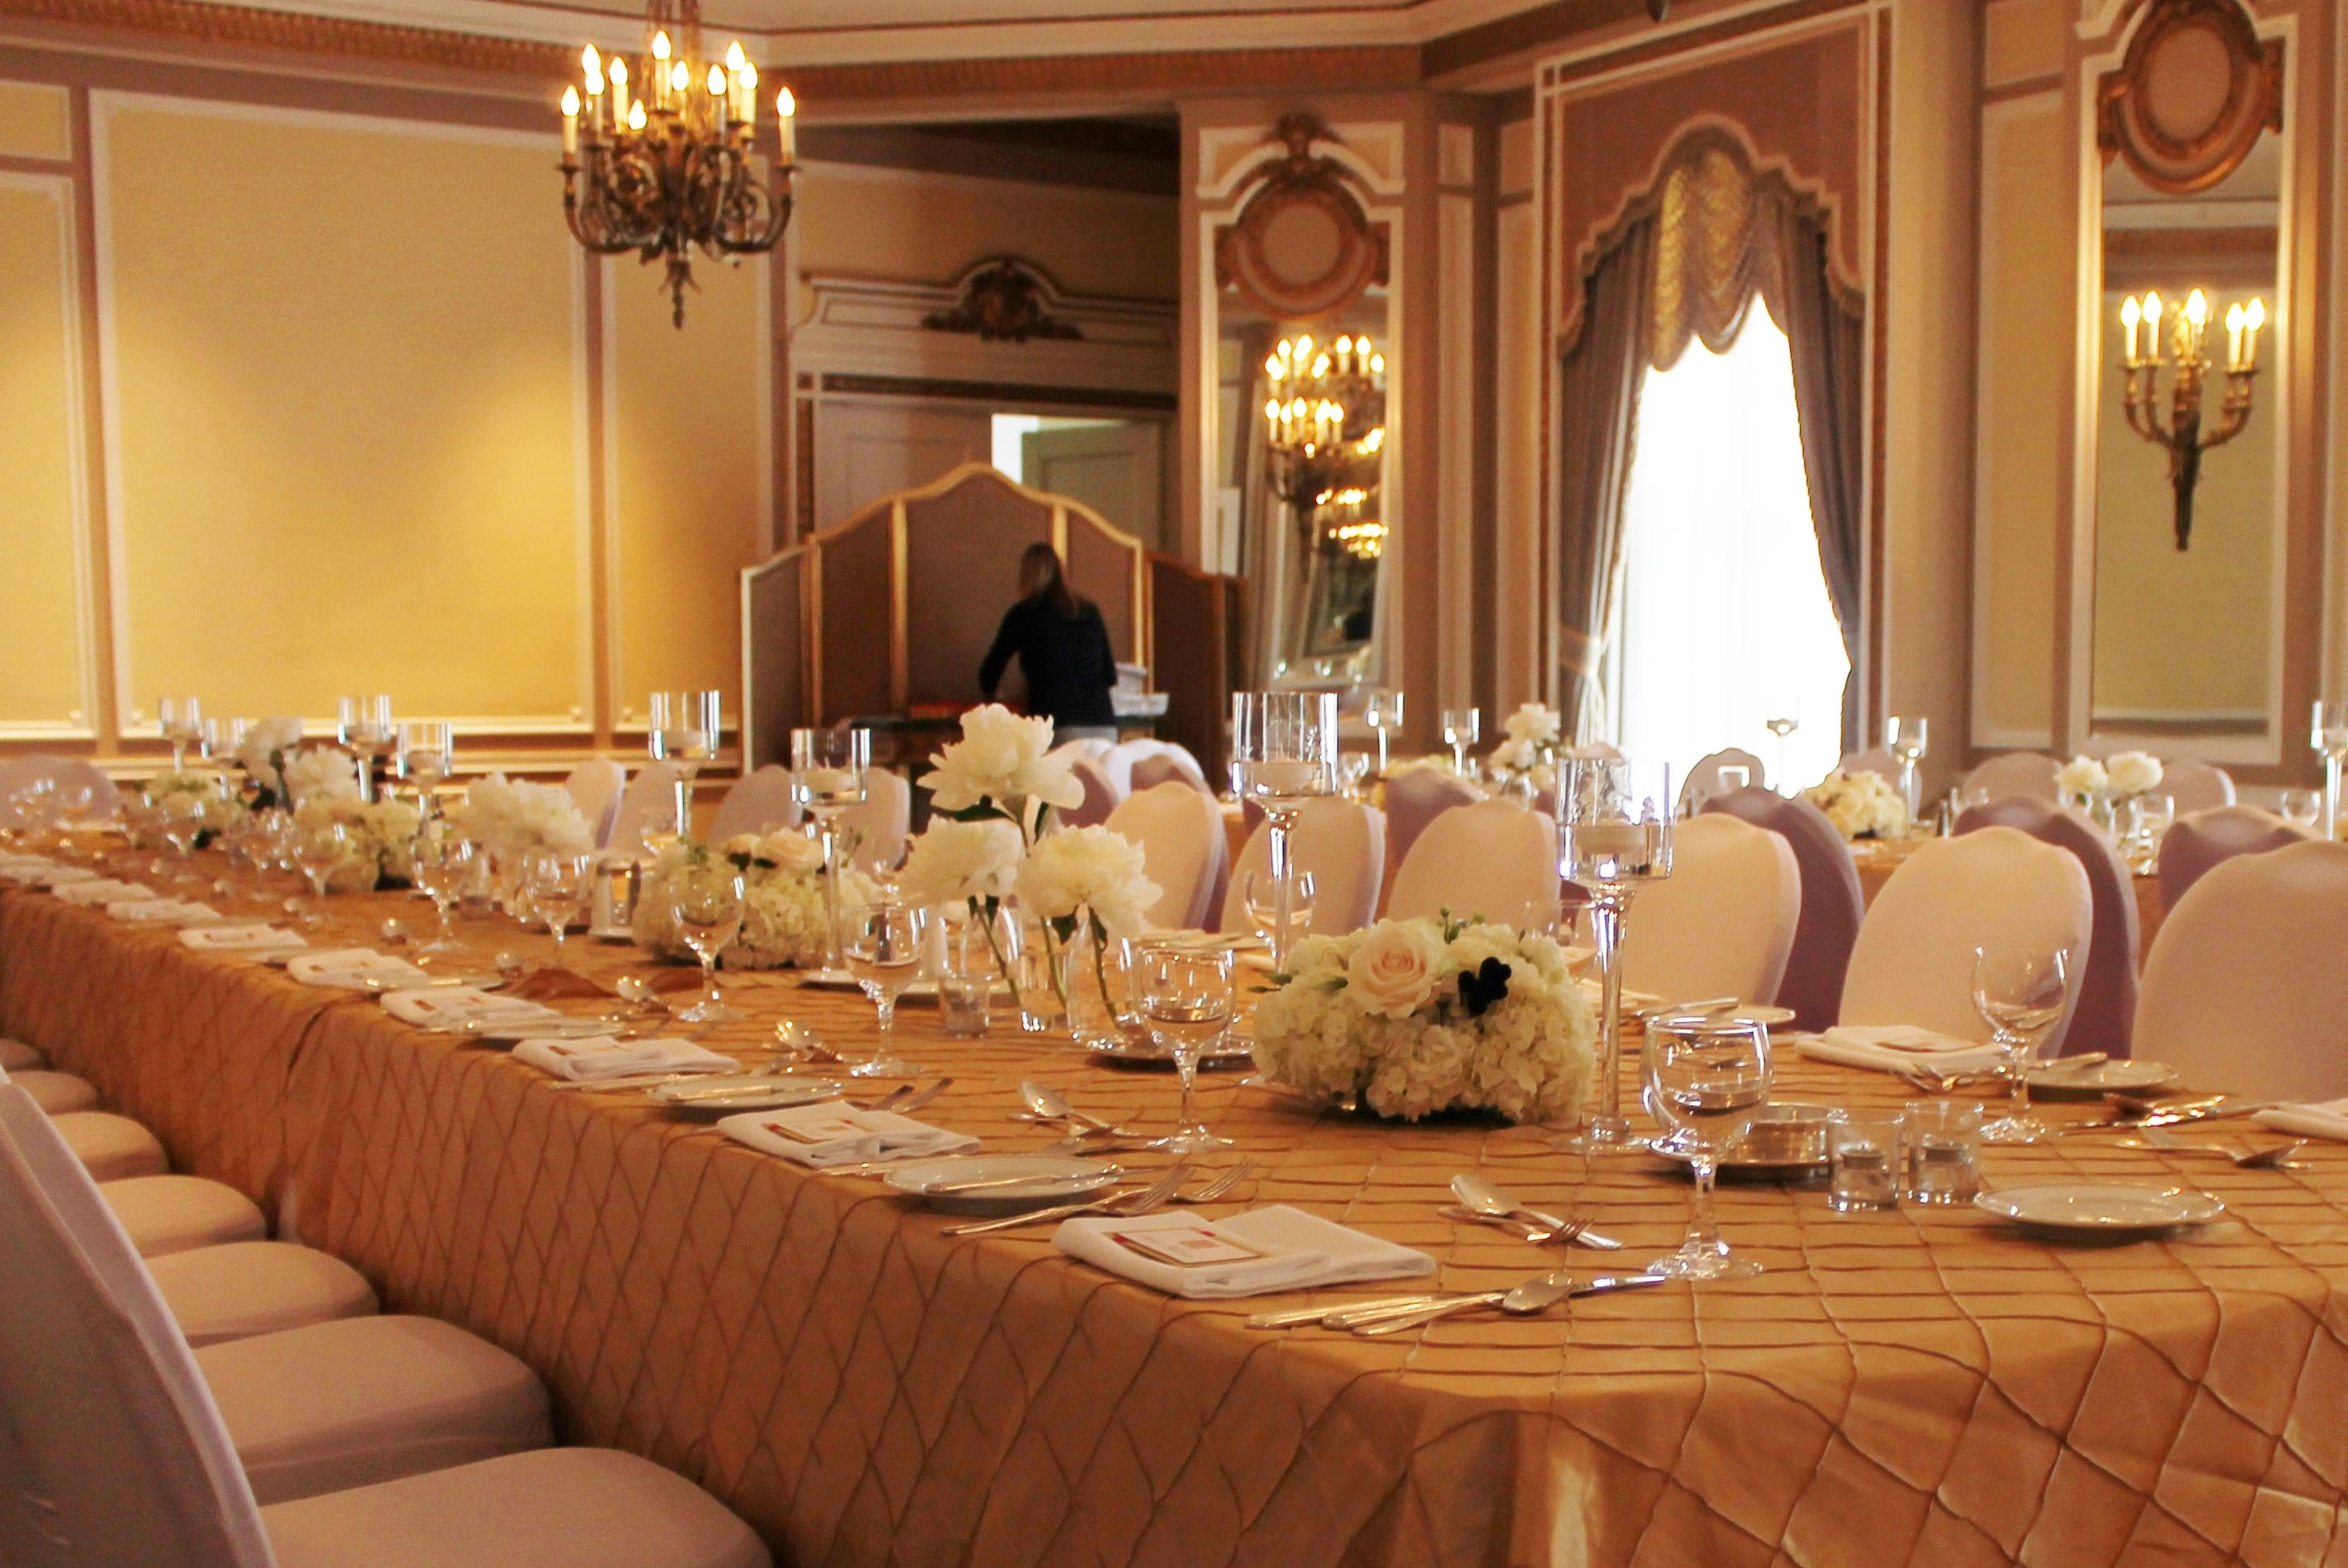 Golds And Cream Ivory Wedding, Long Table Decor, Floating